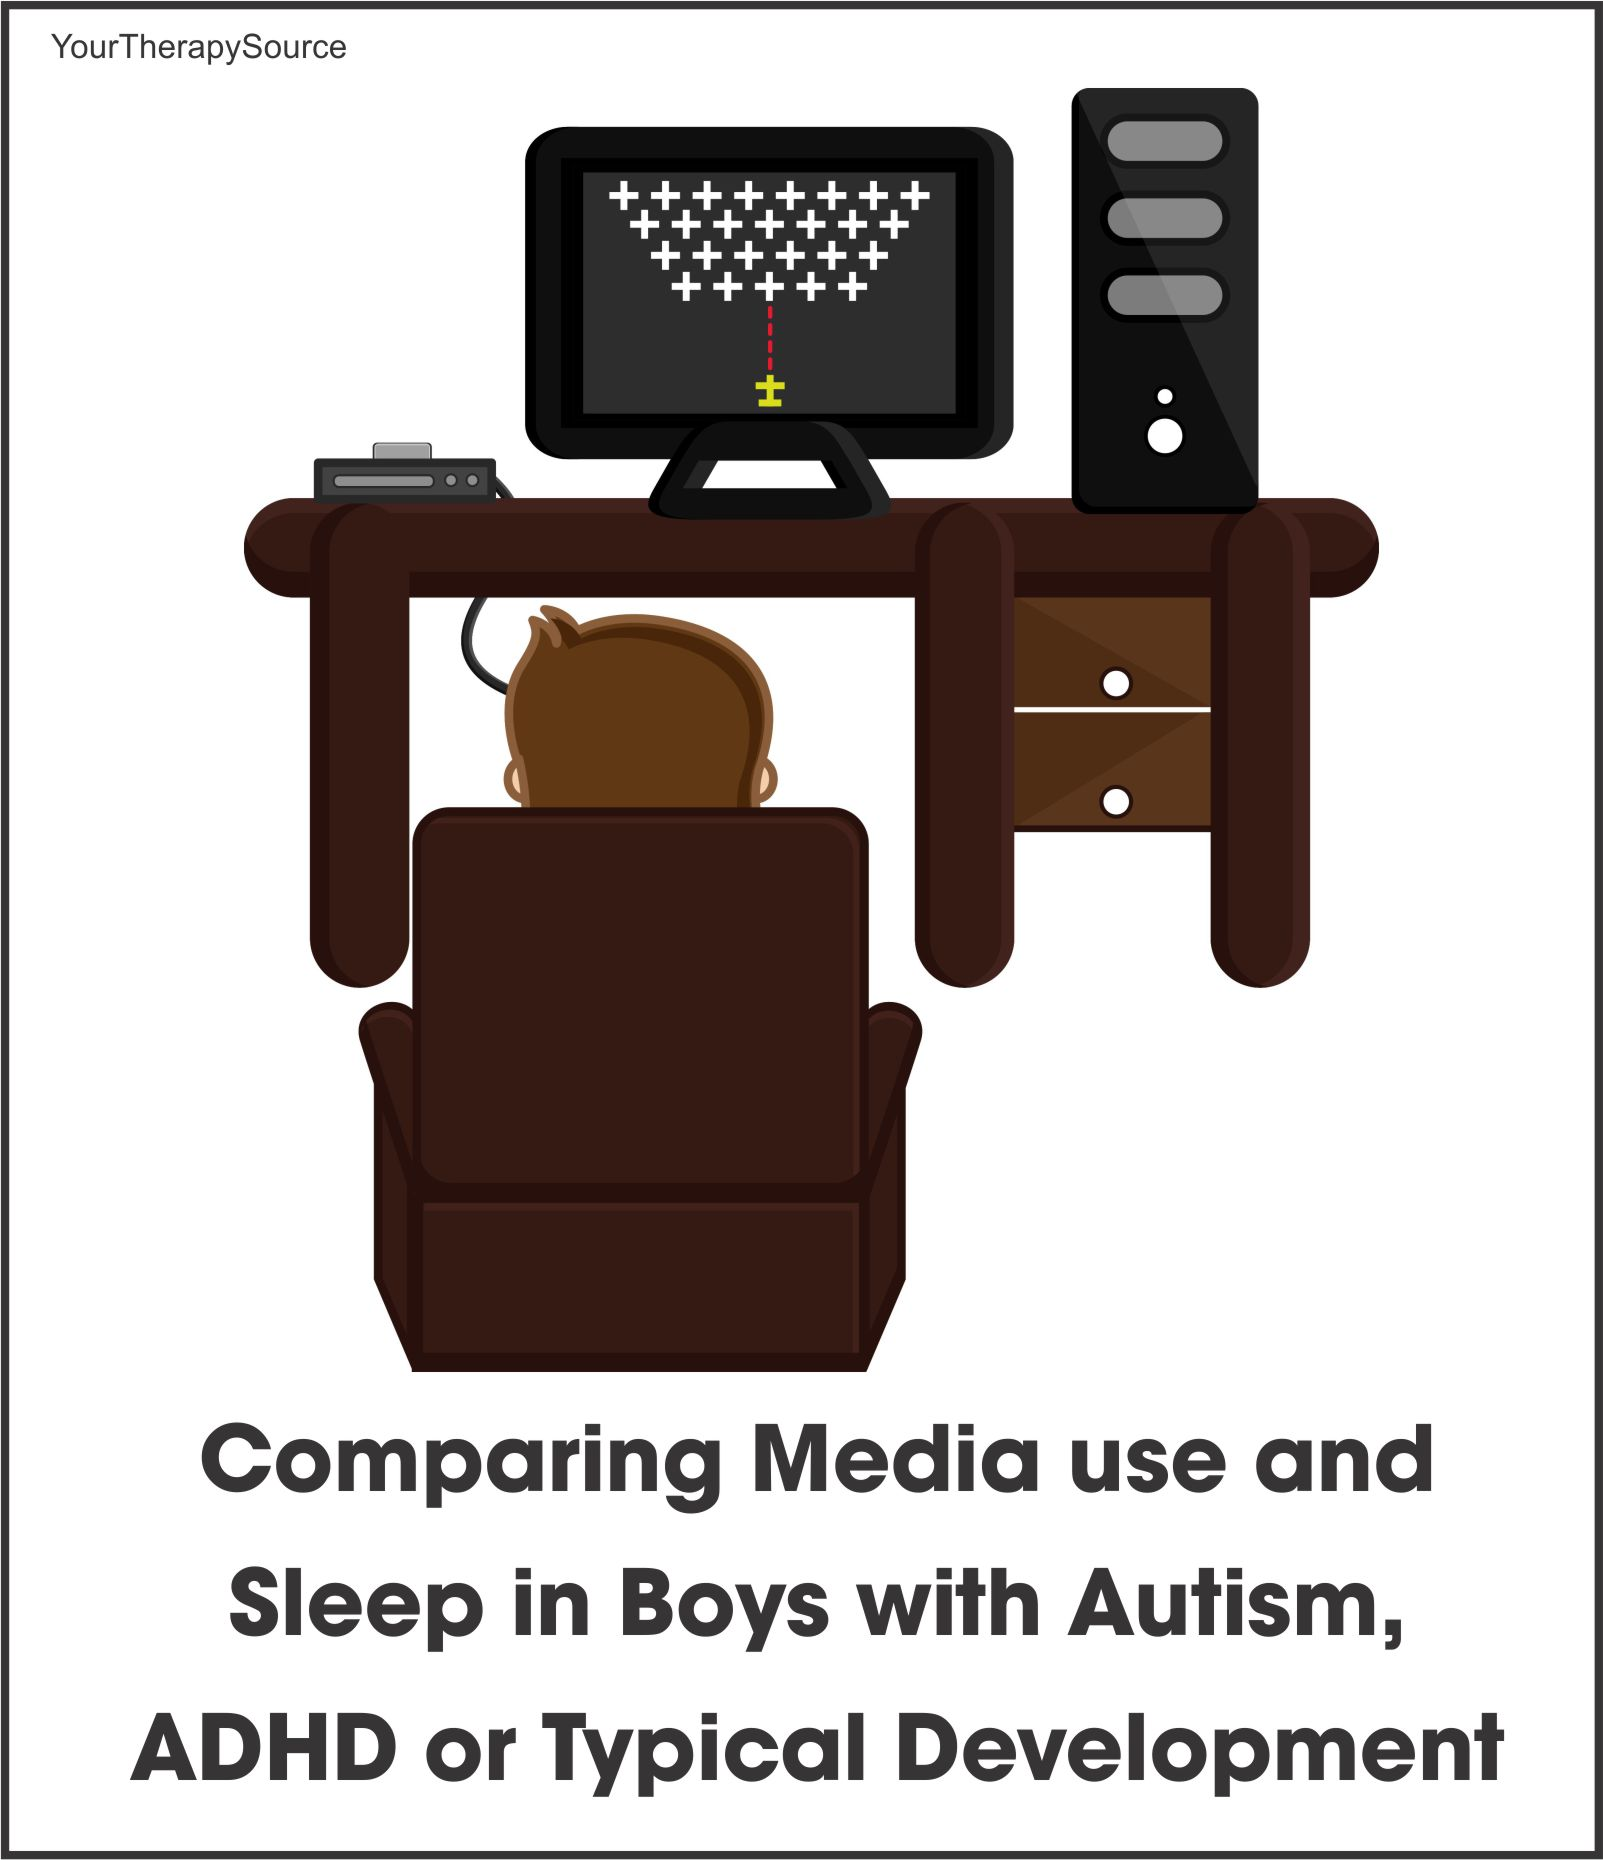 Comparing media use sleep boys with autism - www.YourTherapySource.com